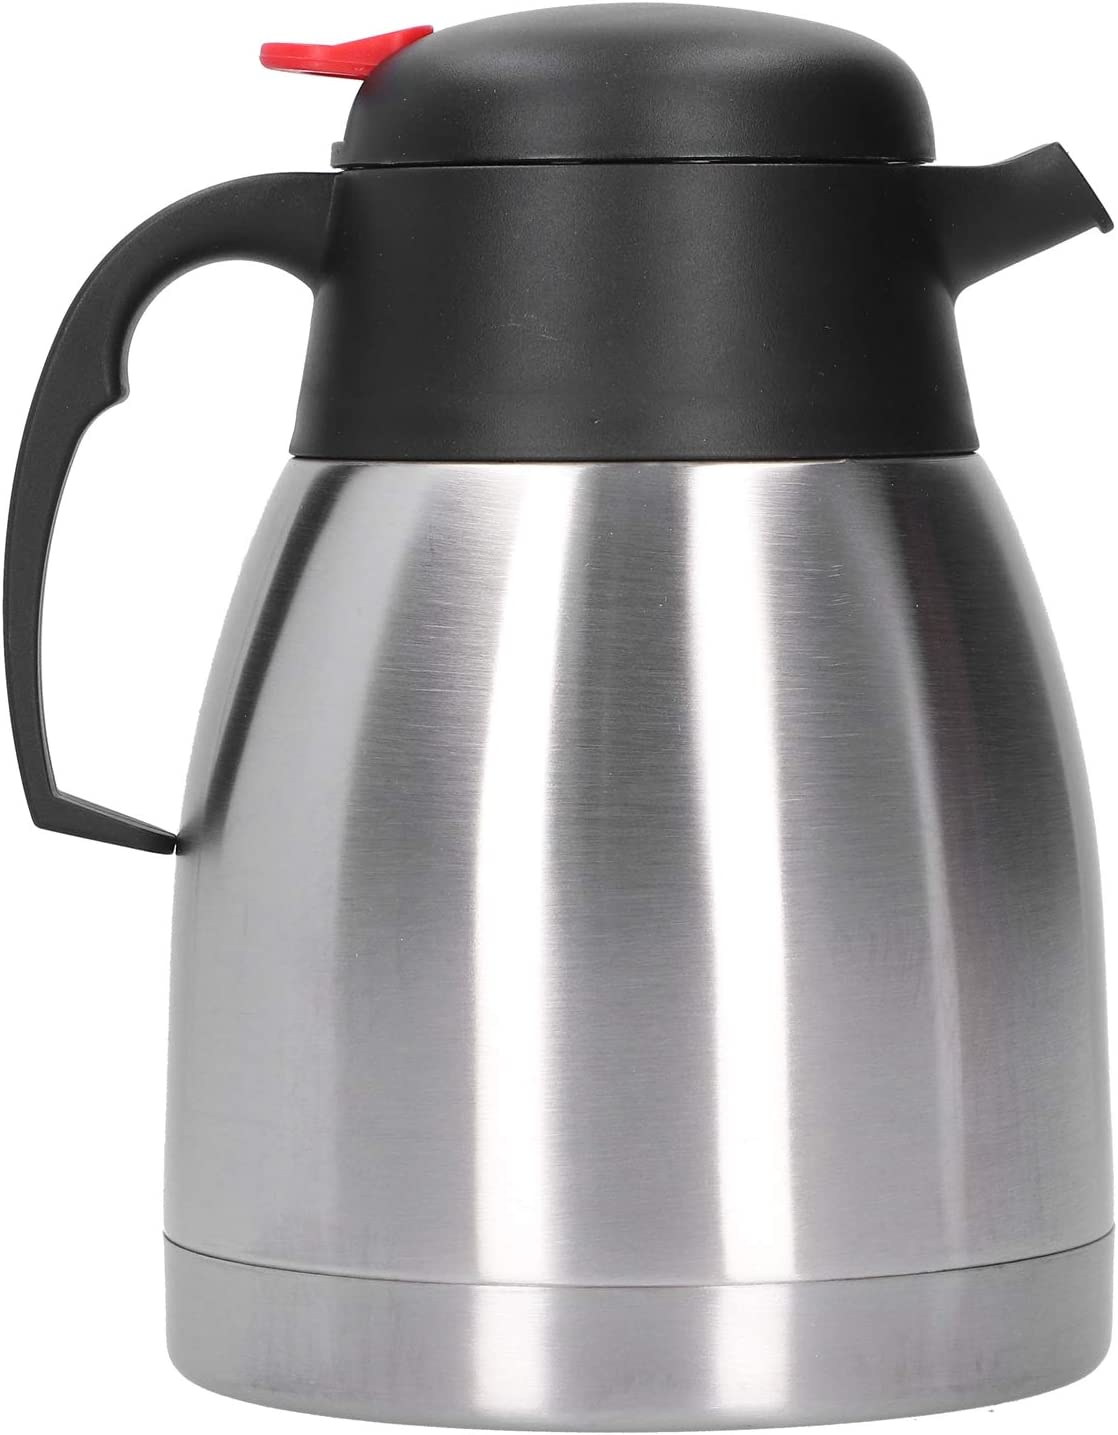 Don't miss the Today's only campaign Vacuum Kettle Thermal Jug Stainle Large Capacity 304